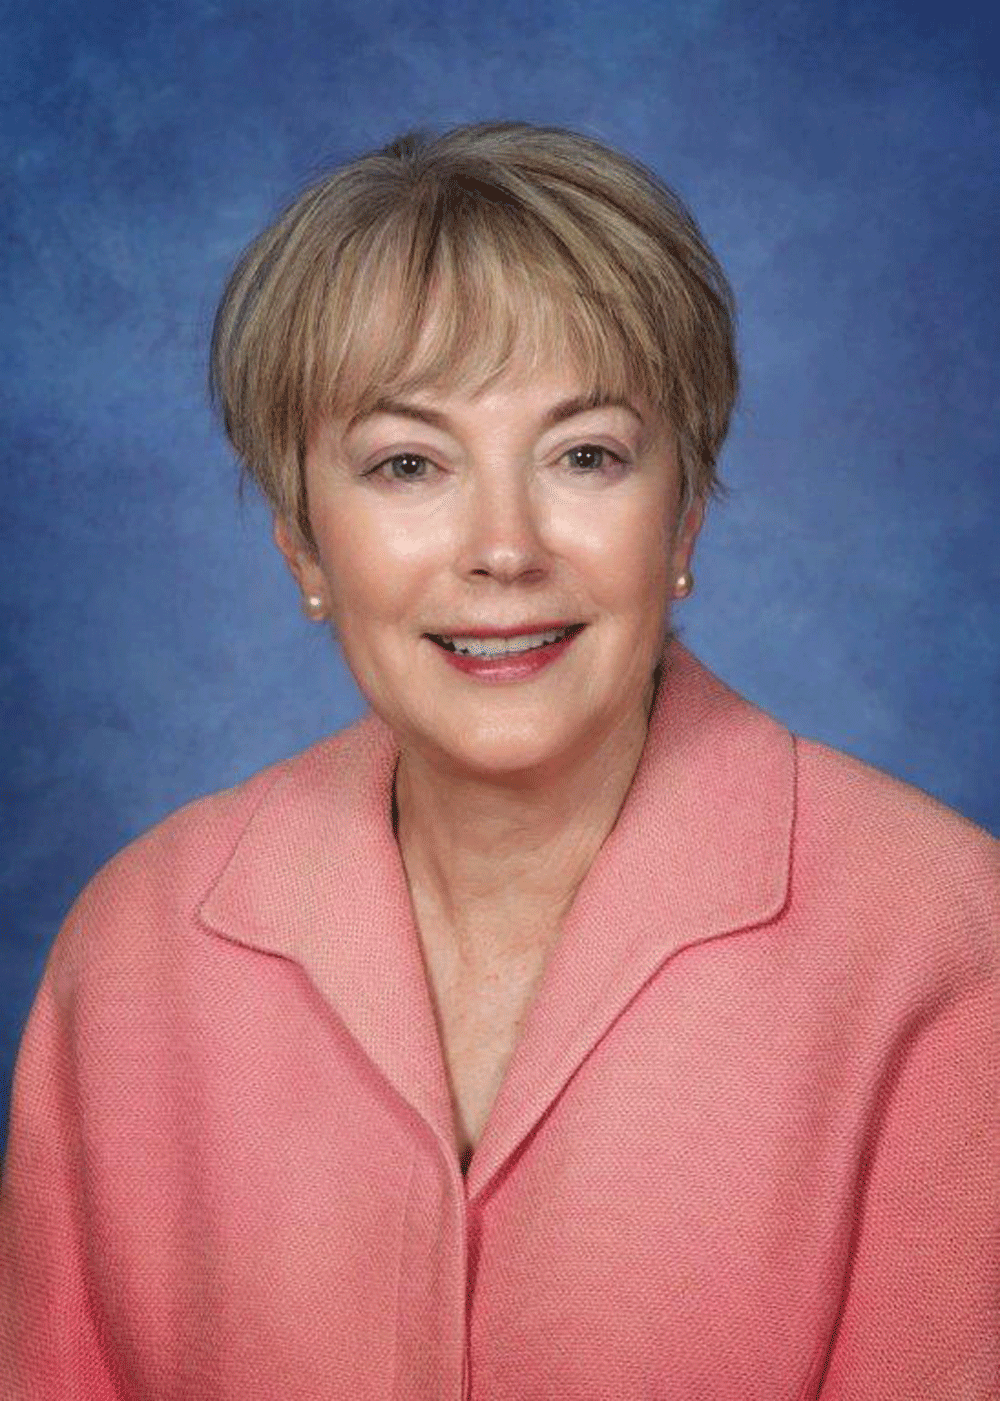 Visalia's Woman of the Year Dena Cochran raises funds, awareness and structures in her community